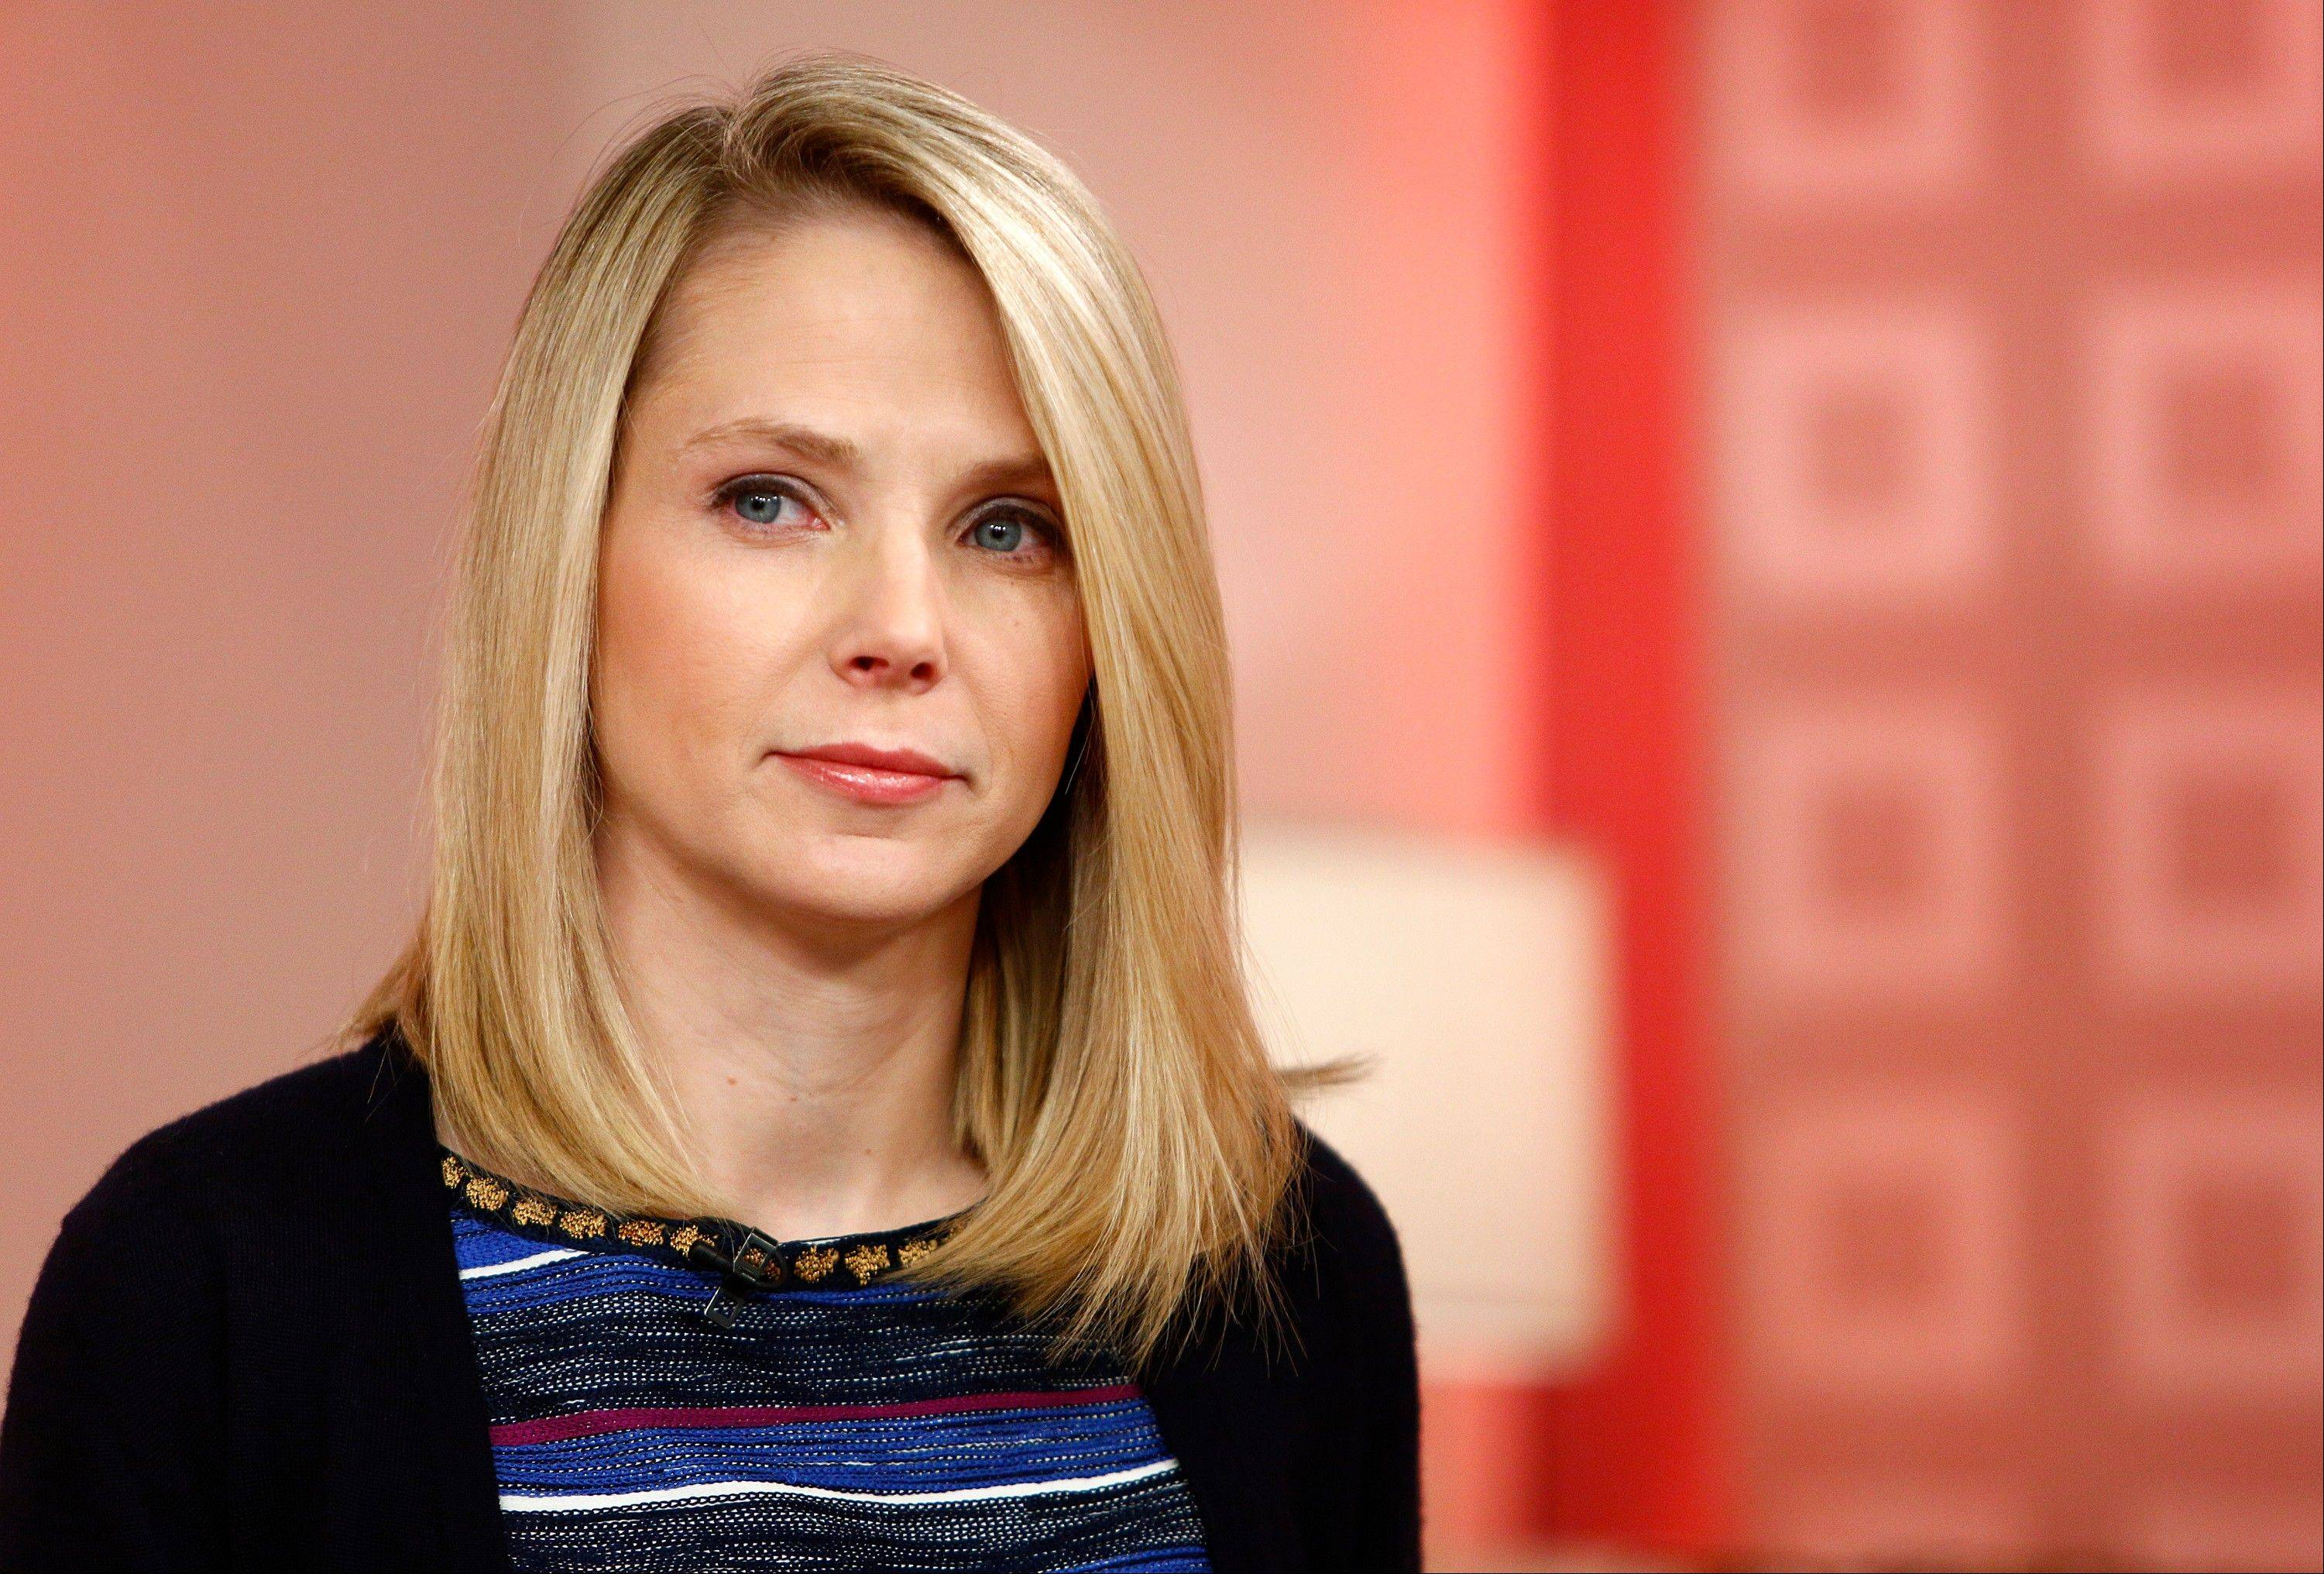 ASSOCIATED PRESS/NBCAs Yahoo CEO Marissa Mayer goes about her business of saving Yahoo, which now involves a ban on working from home, a new study shows a significant jump in the number of U.S. employers offering flex and other quality-of-life perks.